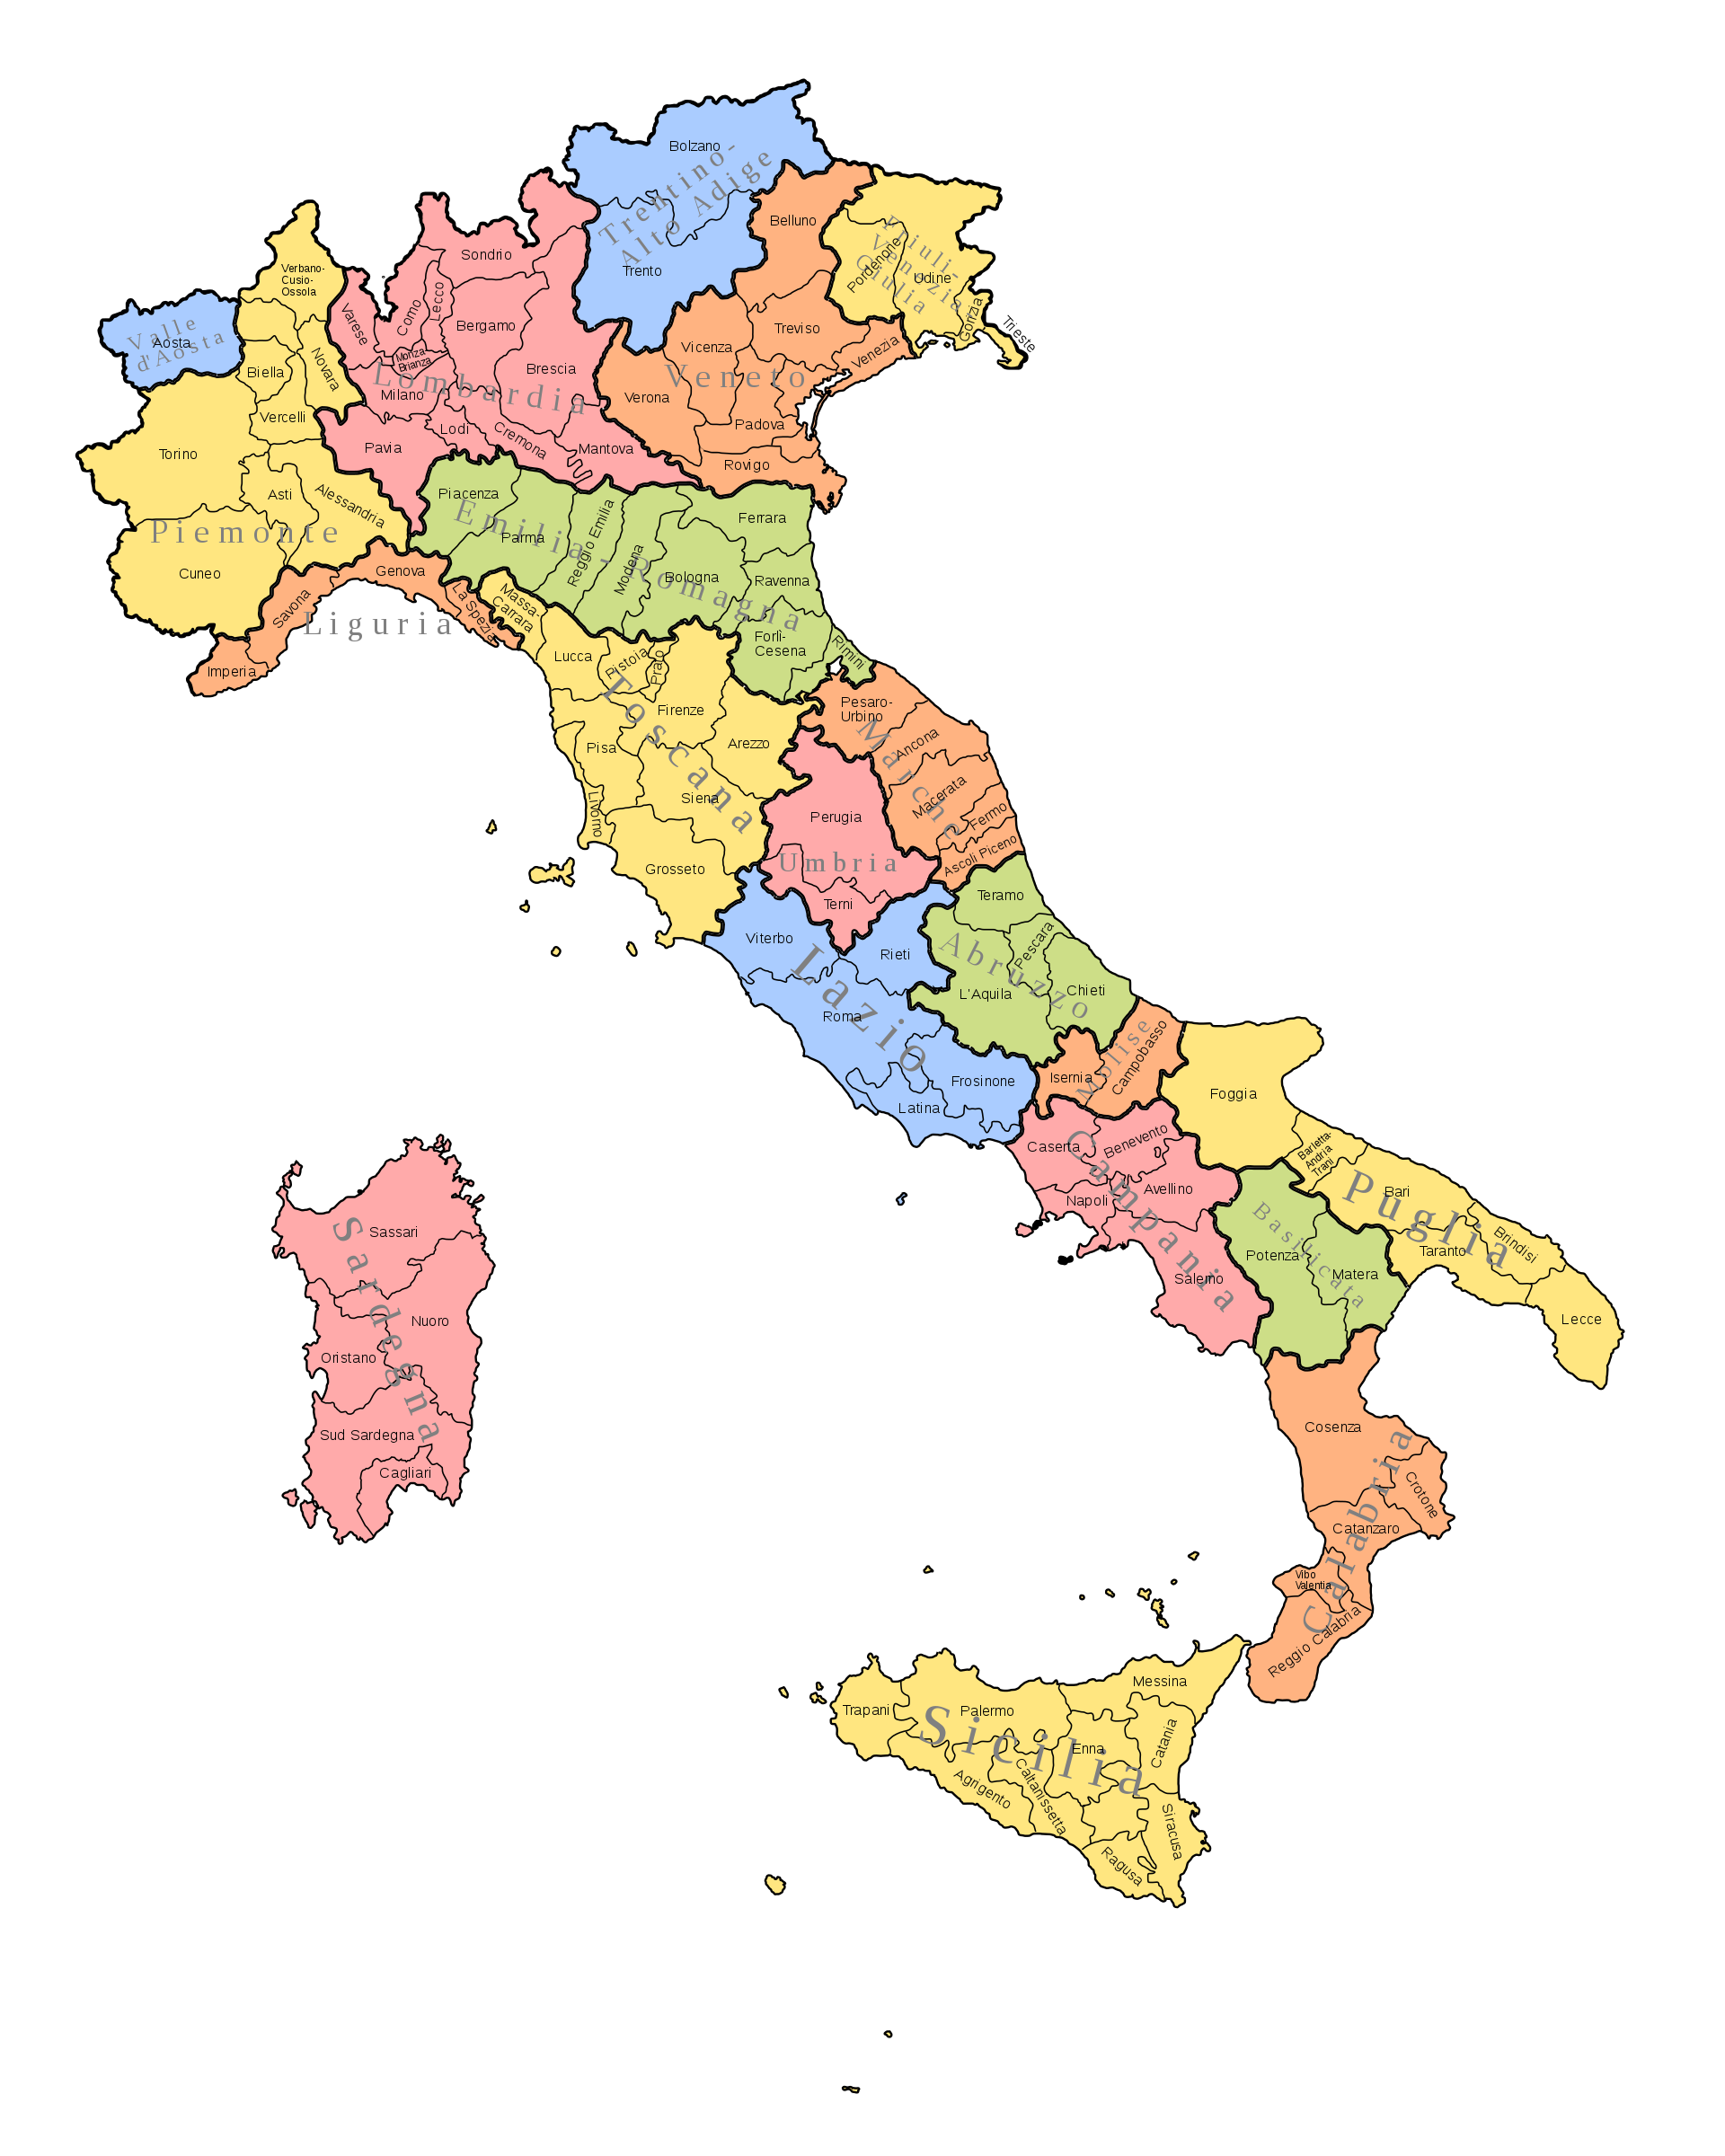 Map Of Provinces Of Italy.Maps Missing Provinces On Italy Issue 33230 Elastic Kibana